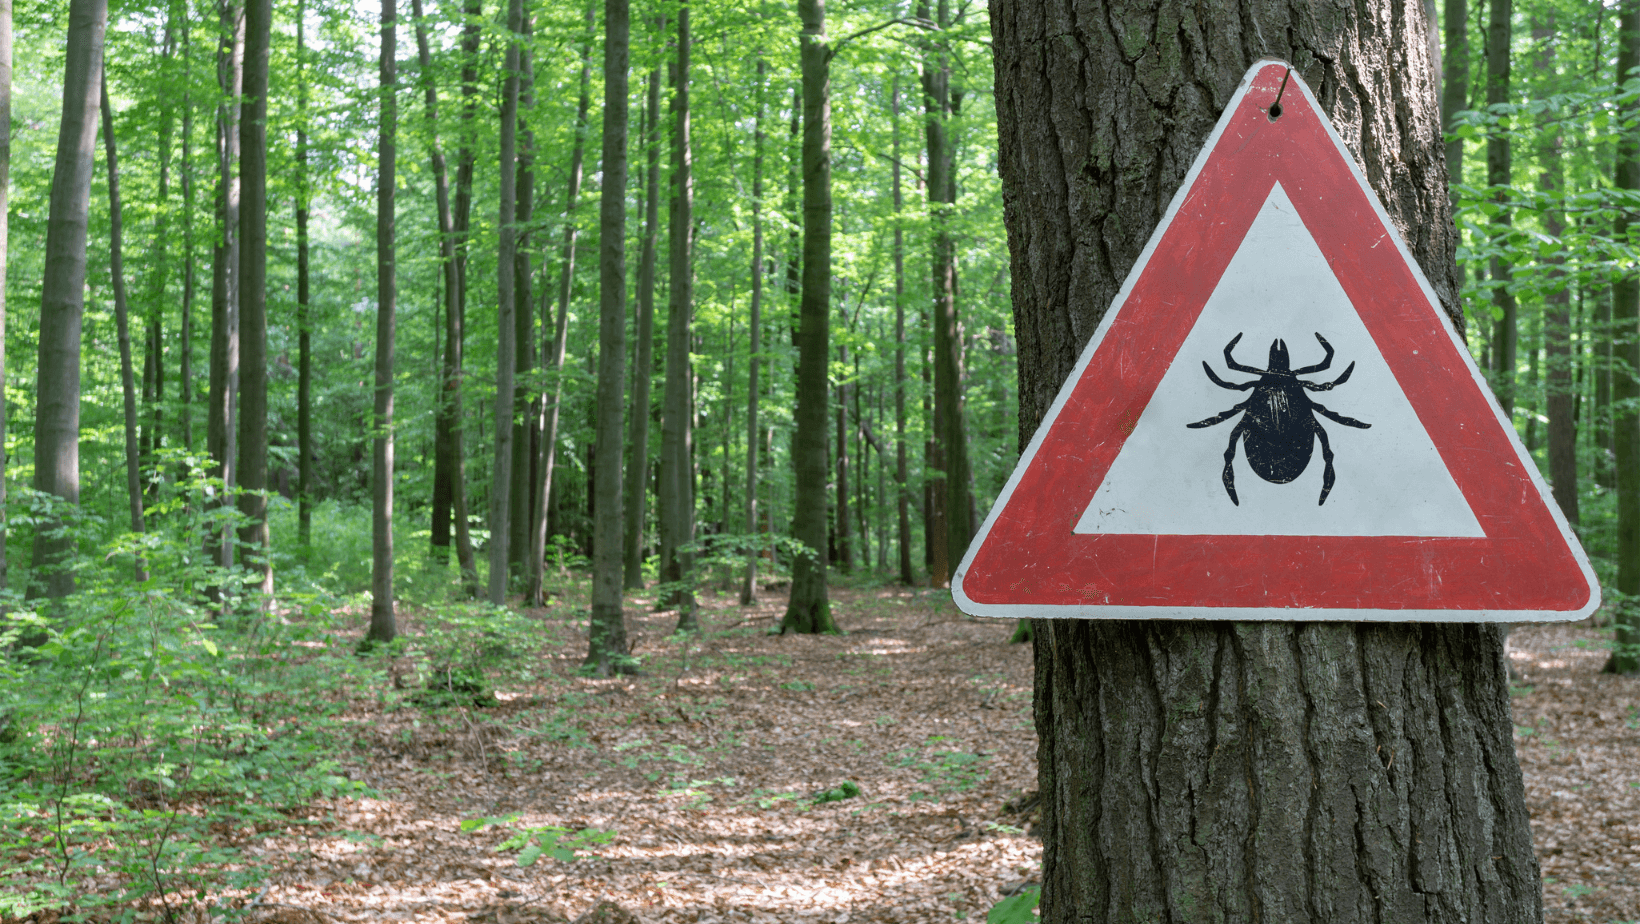 Beware of tick sign on tree in the forest.